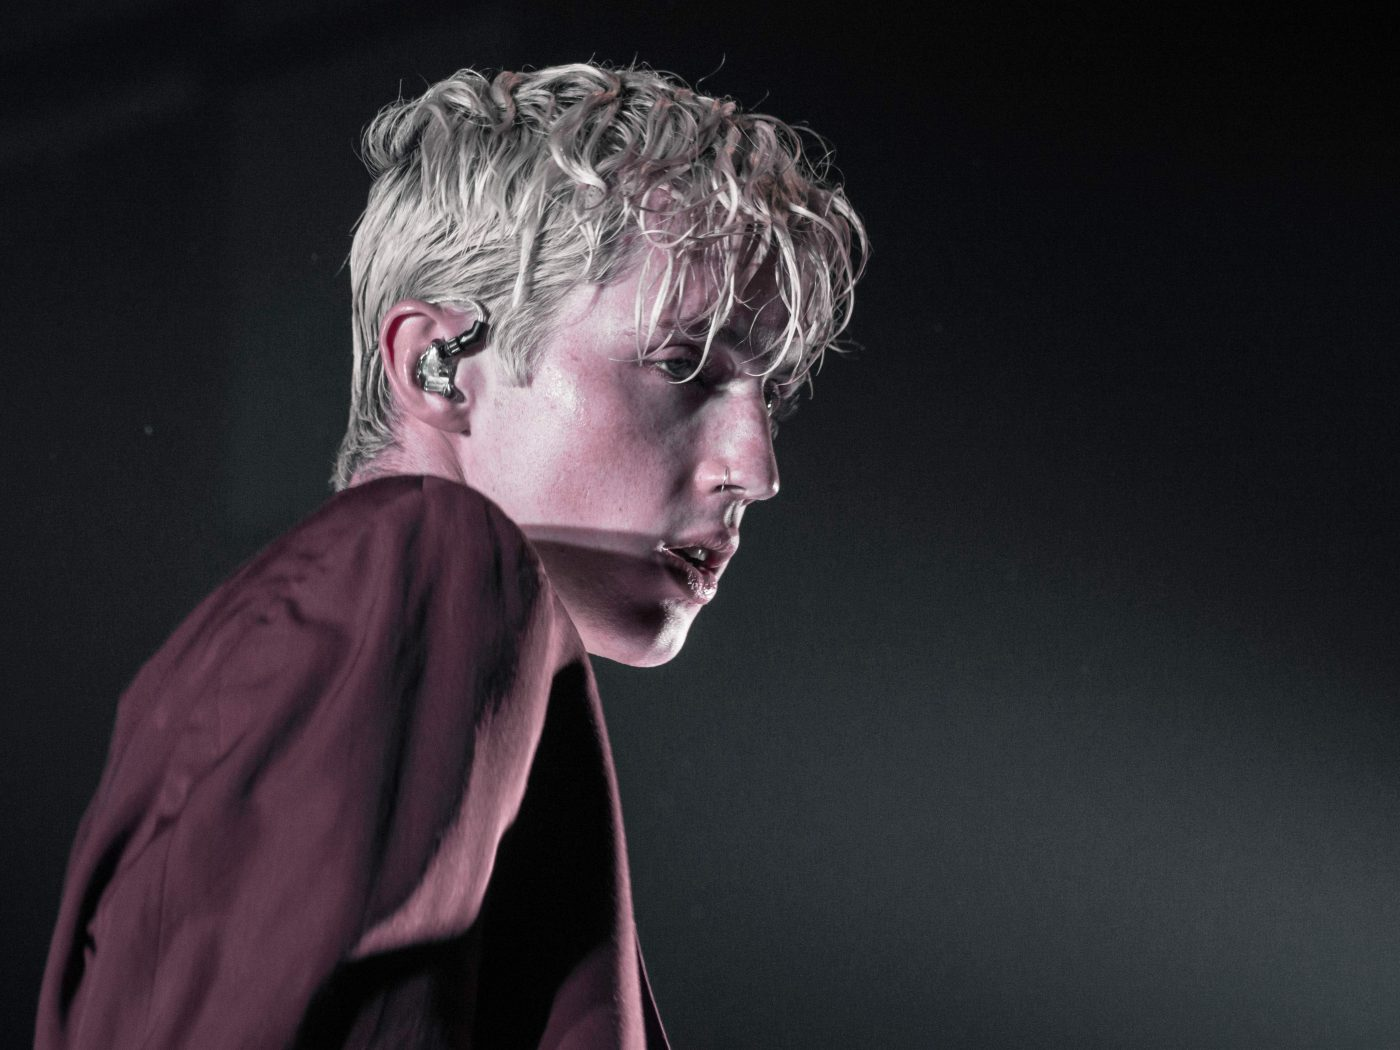 Troye Sivan : The Anthem   Photos   LIVING LIFE FEARLESS